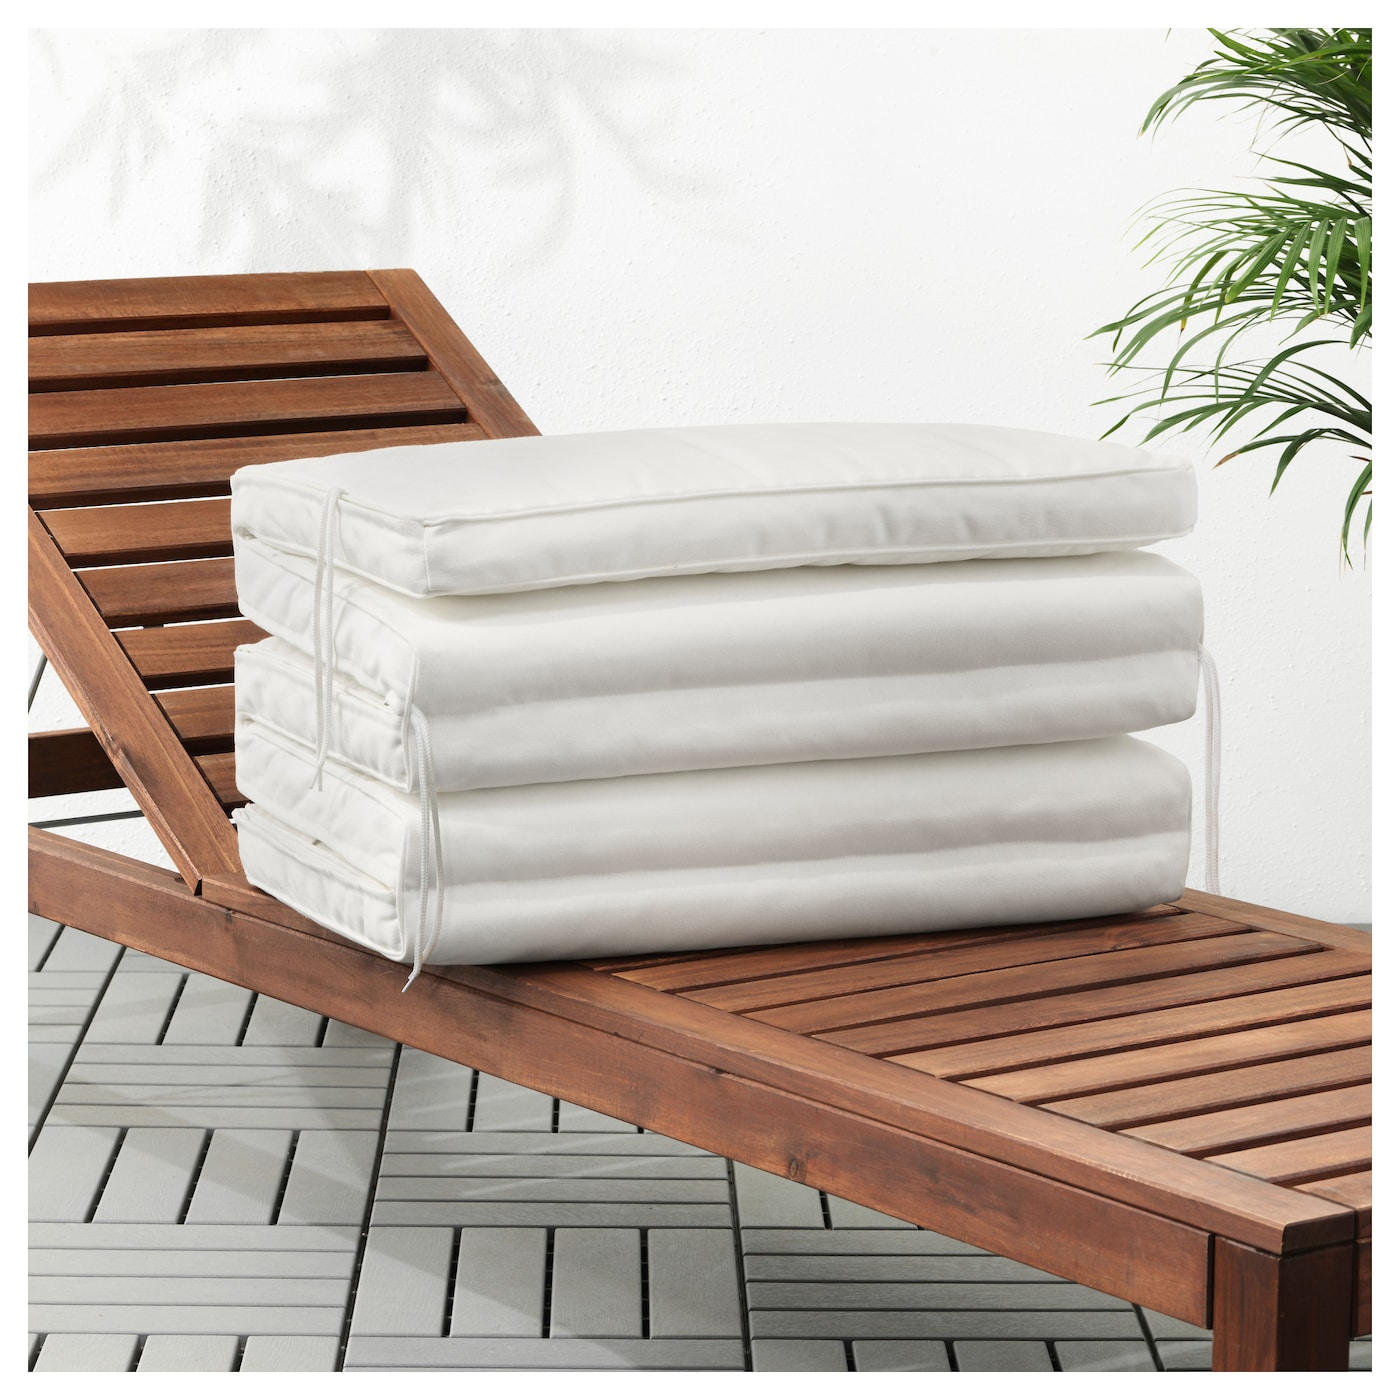 kungs matelas fin bain de soleil blanc 190x60 cm ikea. Black Bedroom Furniture Sets. Home Design Ideas